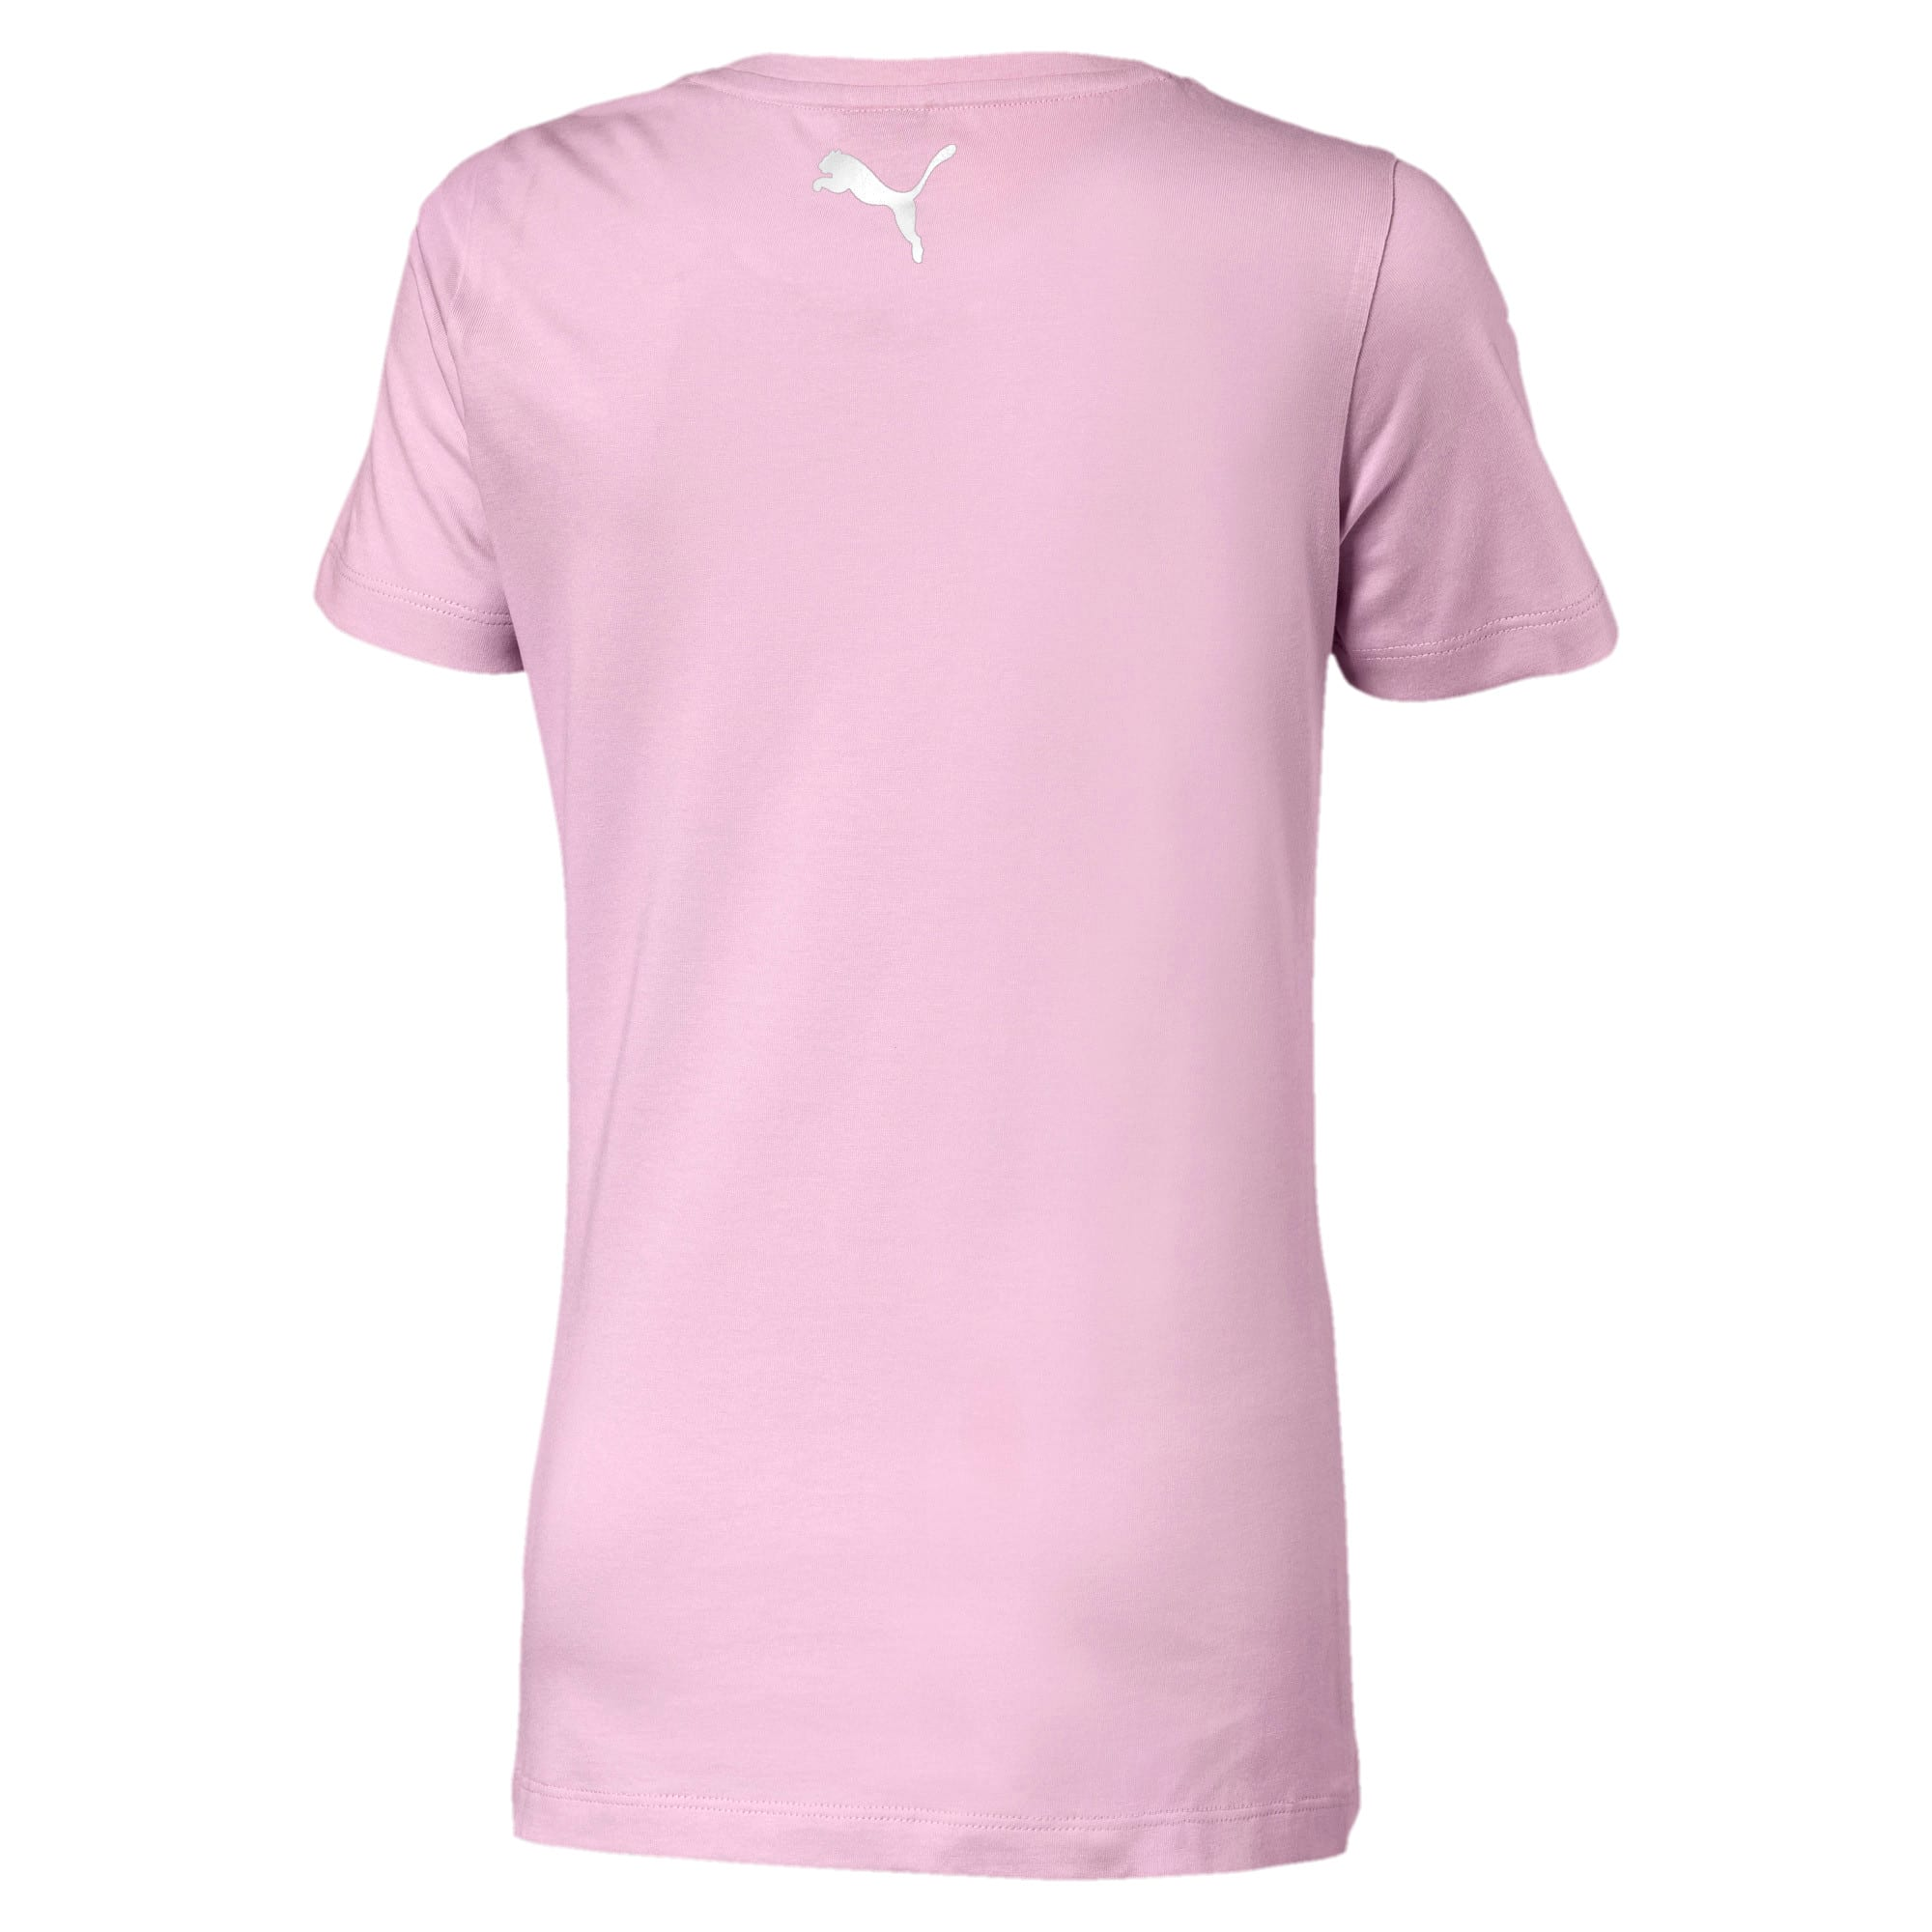 Thumbnail 2 of Alpha Logo Girls' Tee, Pale Pink, medium